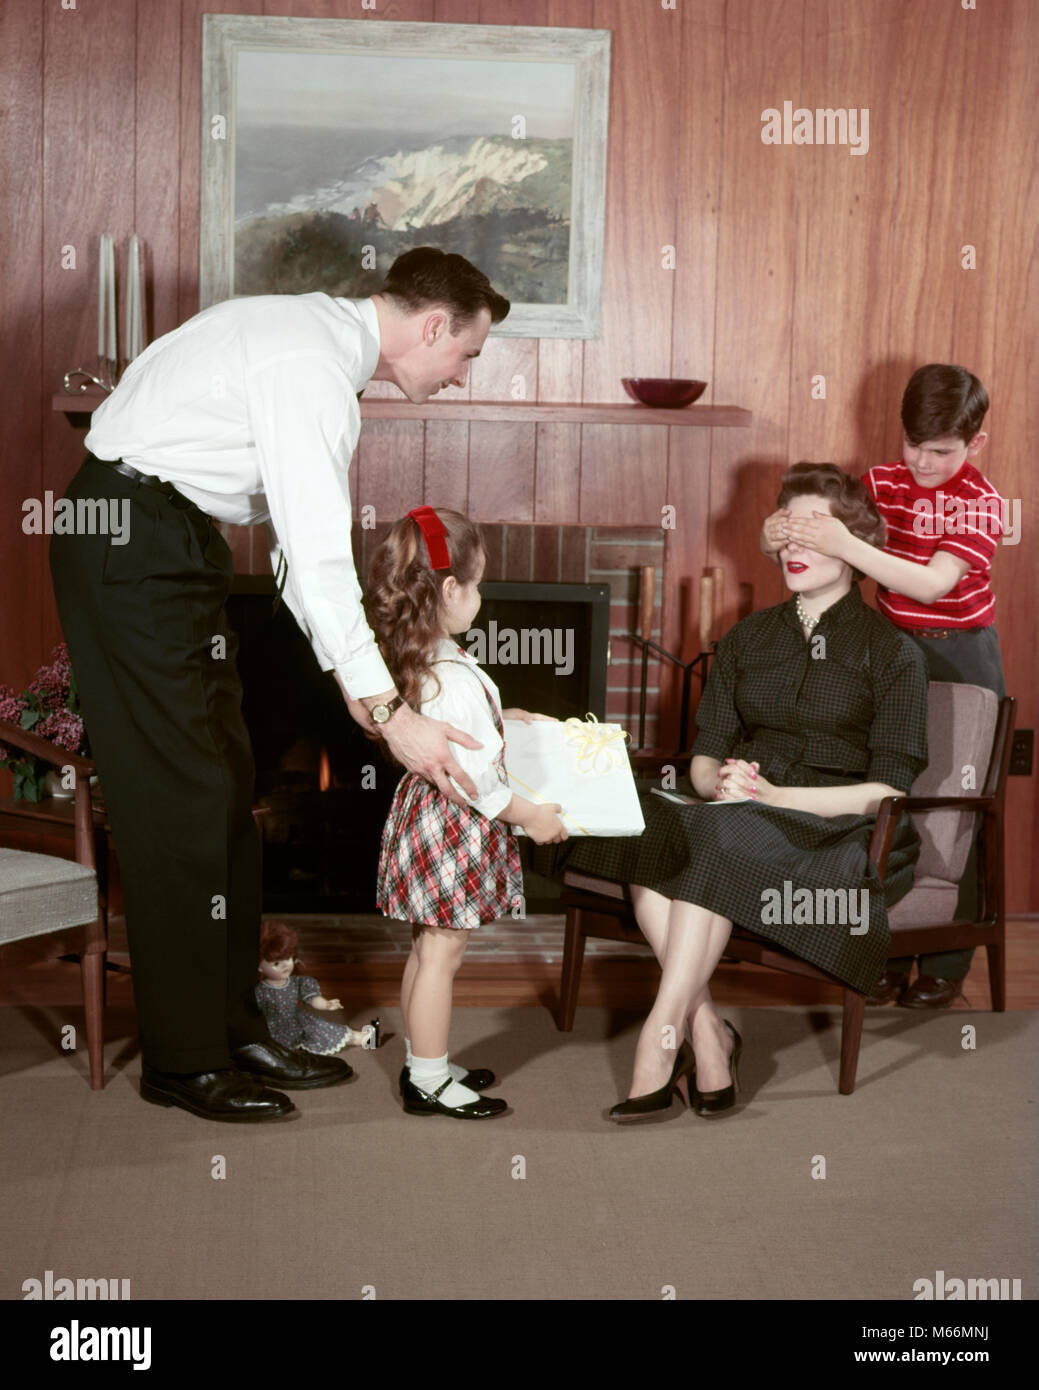 1950s FAMILY IN LIVING ROOM SURPRISING MOTHER WITH GIFT FATHER DAUGHTER HOLD GIFT SON COVERS MOMS EYES - km187 HAR001 - Stock Image